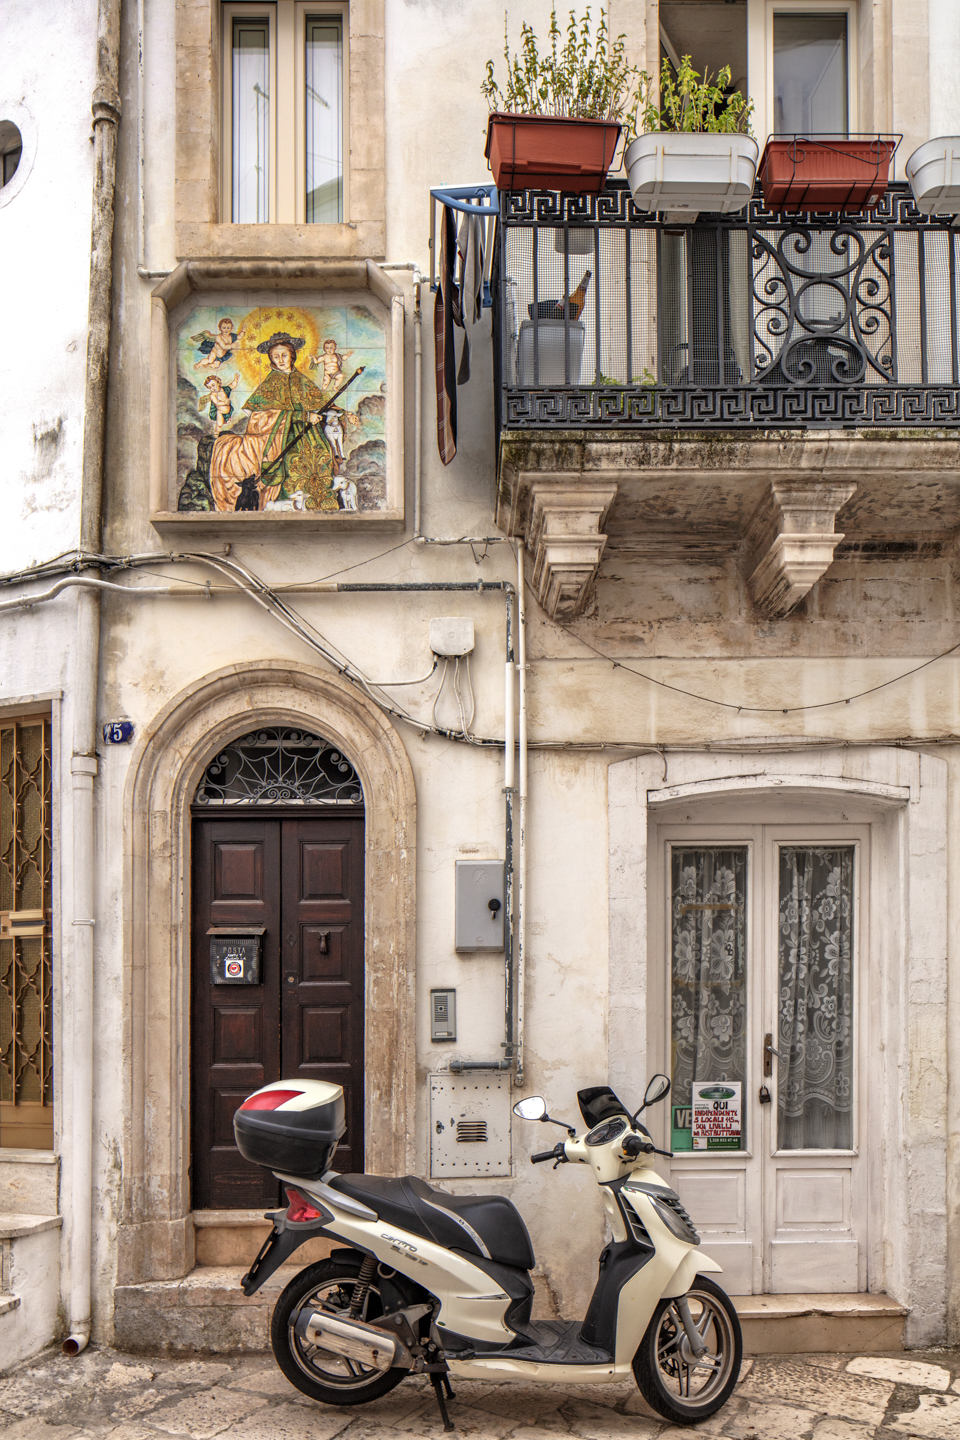 House with Scooter, Martina Franca, Italy, August 14, 2018